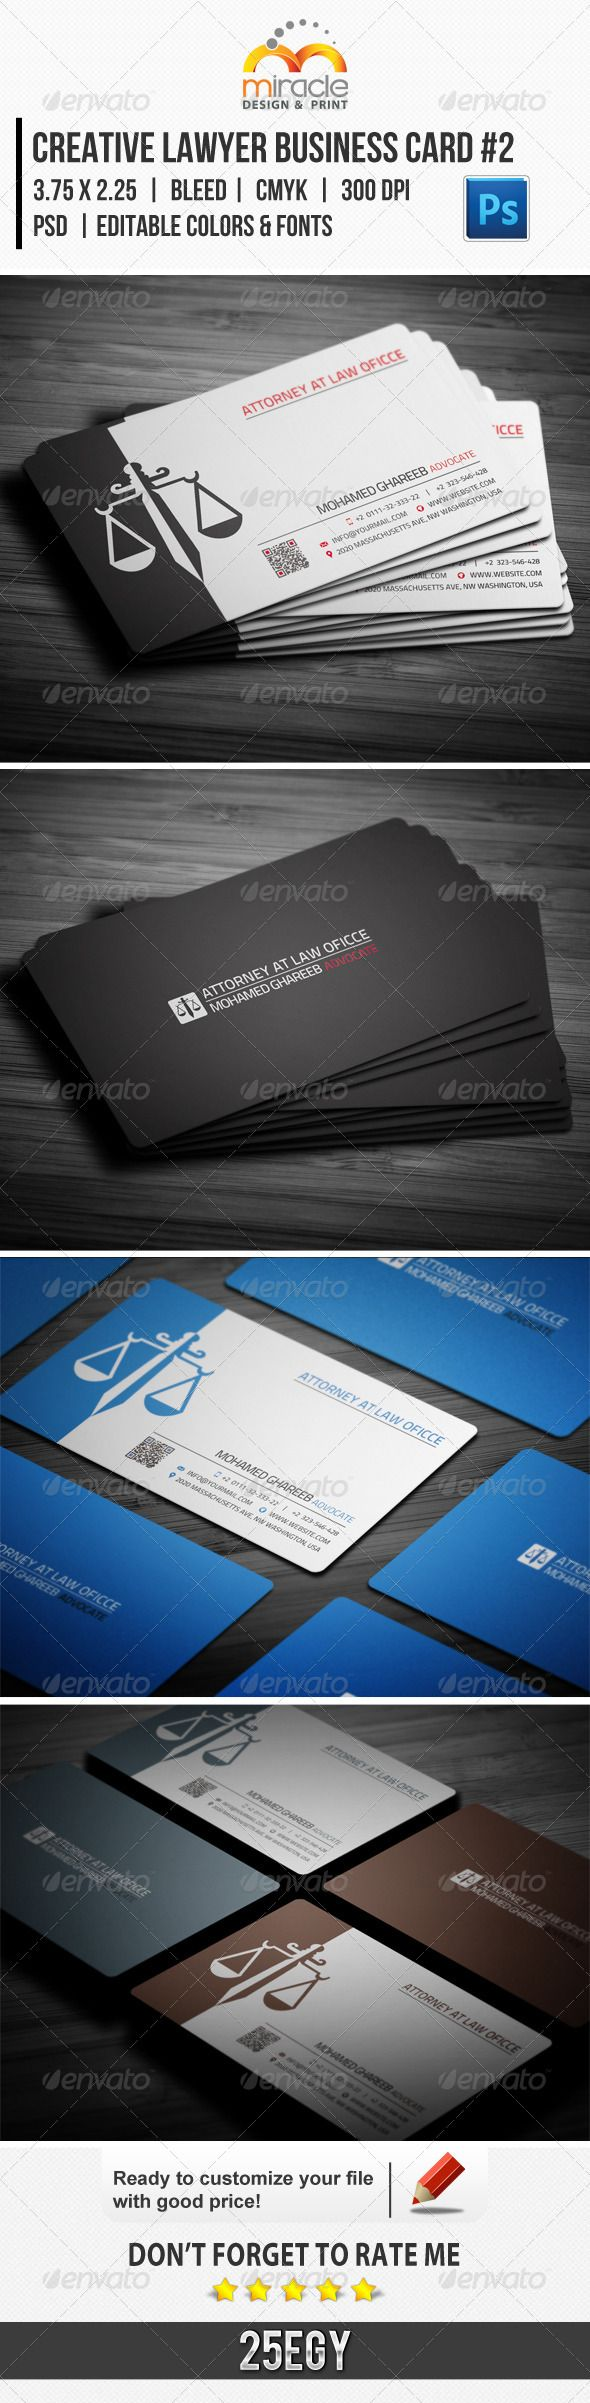 Creative Lawyer Business Card #2 #GraphicRiver Creative Lawyer Business Card #2 [ Update 1-1-2014 ] Creative and clean Lawyer Business Card in 5 Color Set. editable text layers or colors shape layers in easy way . Features : › 2 PSD files contain 5 different colors templates . › 2 side artwork for each template . › Horizontal Style . › CMYK Color Mode . › Squared corners. › Rounded Corners. › 300 dpi . › Easy to customize color & Edit text . › 3.75×2.25 with Trim & bleed area . › Clean…